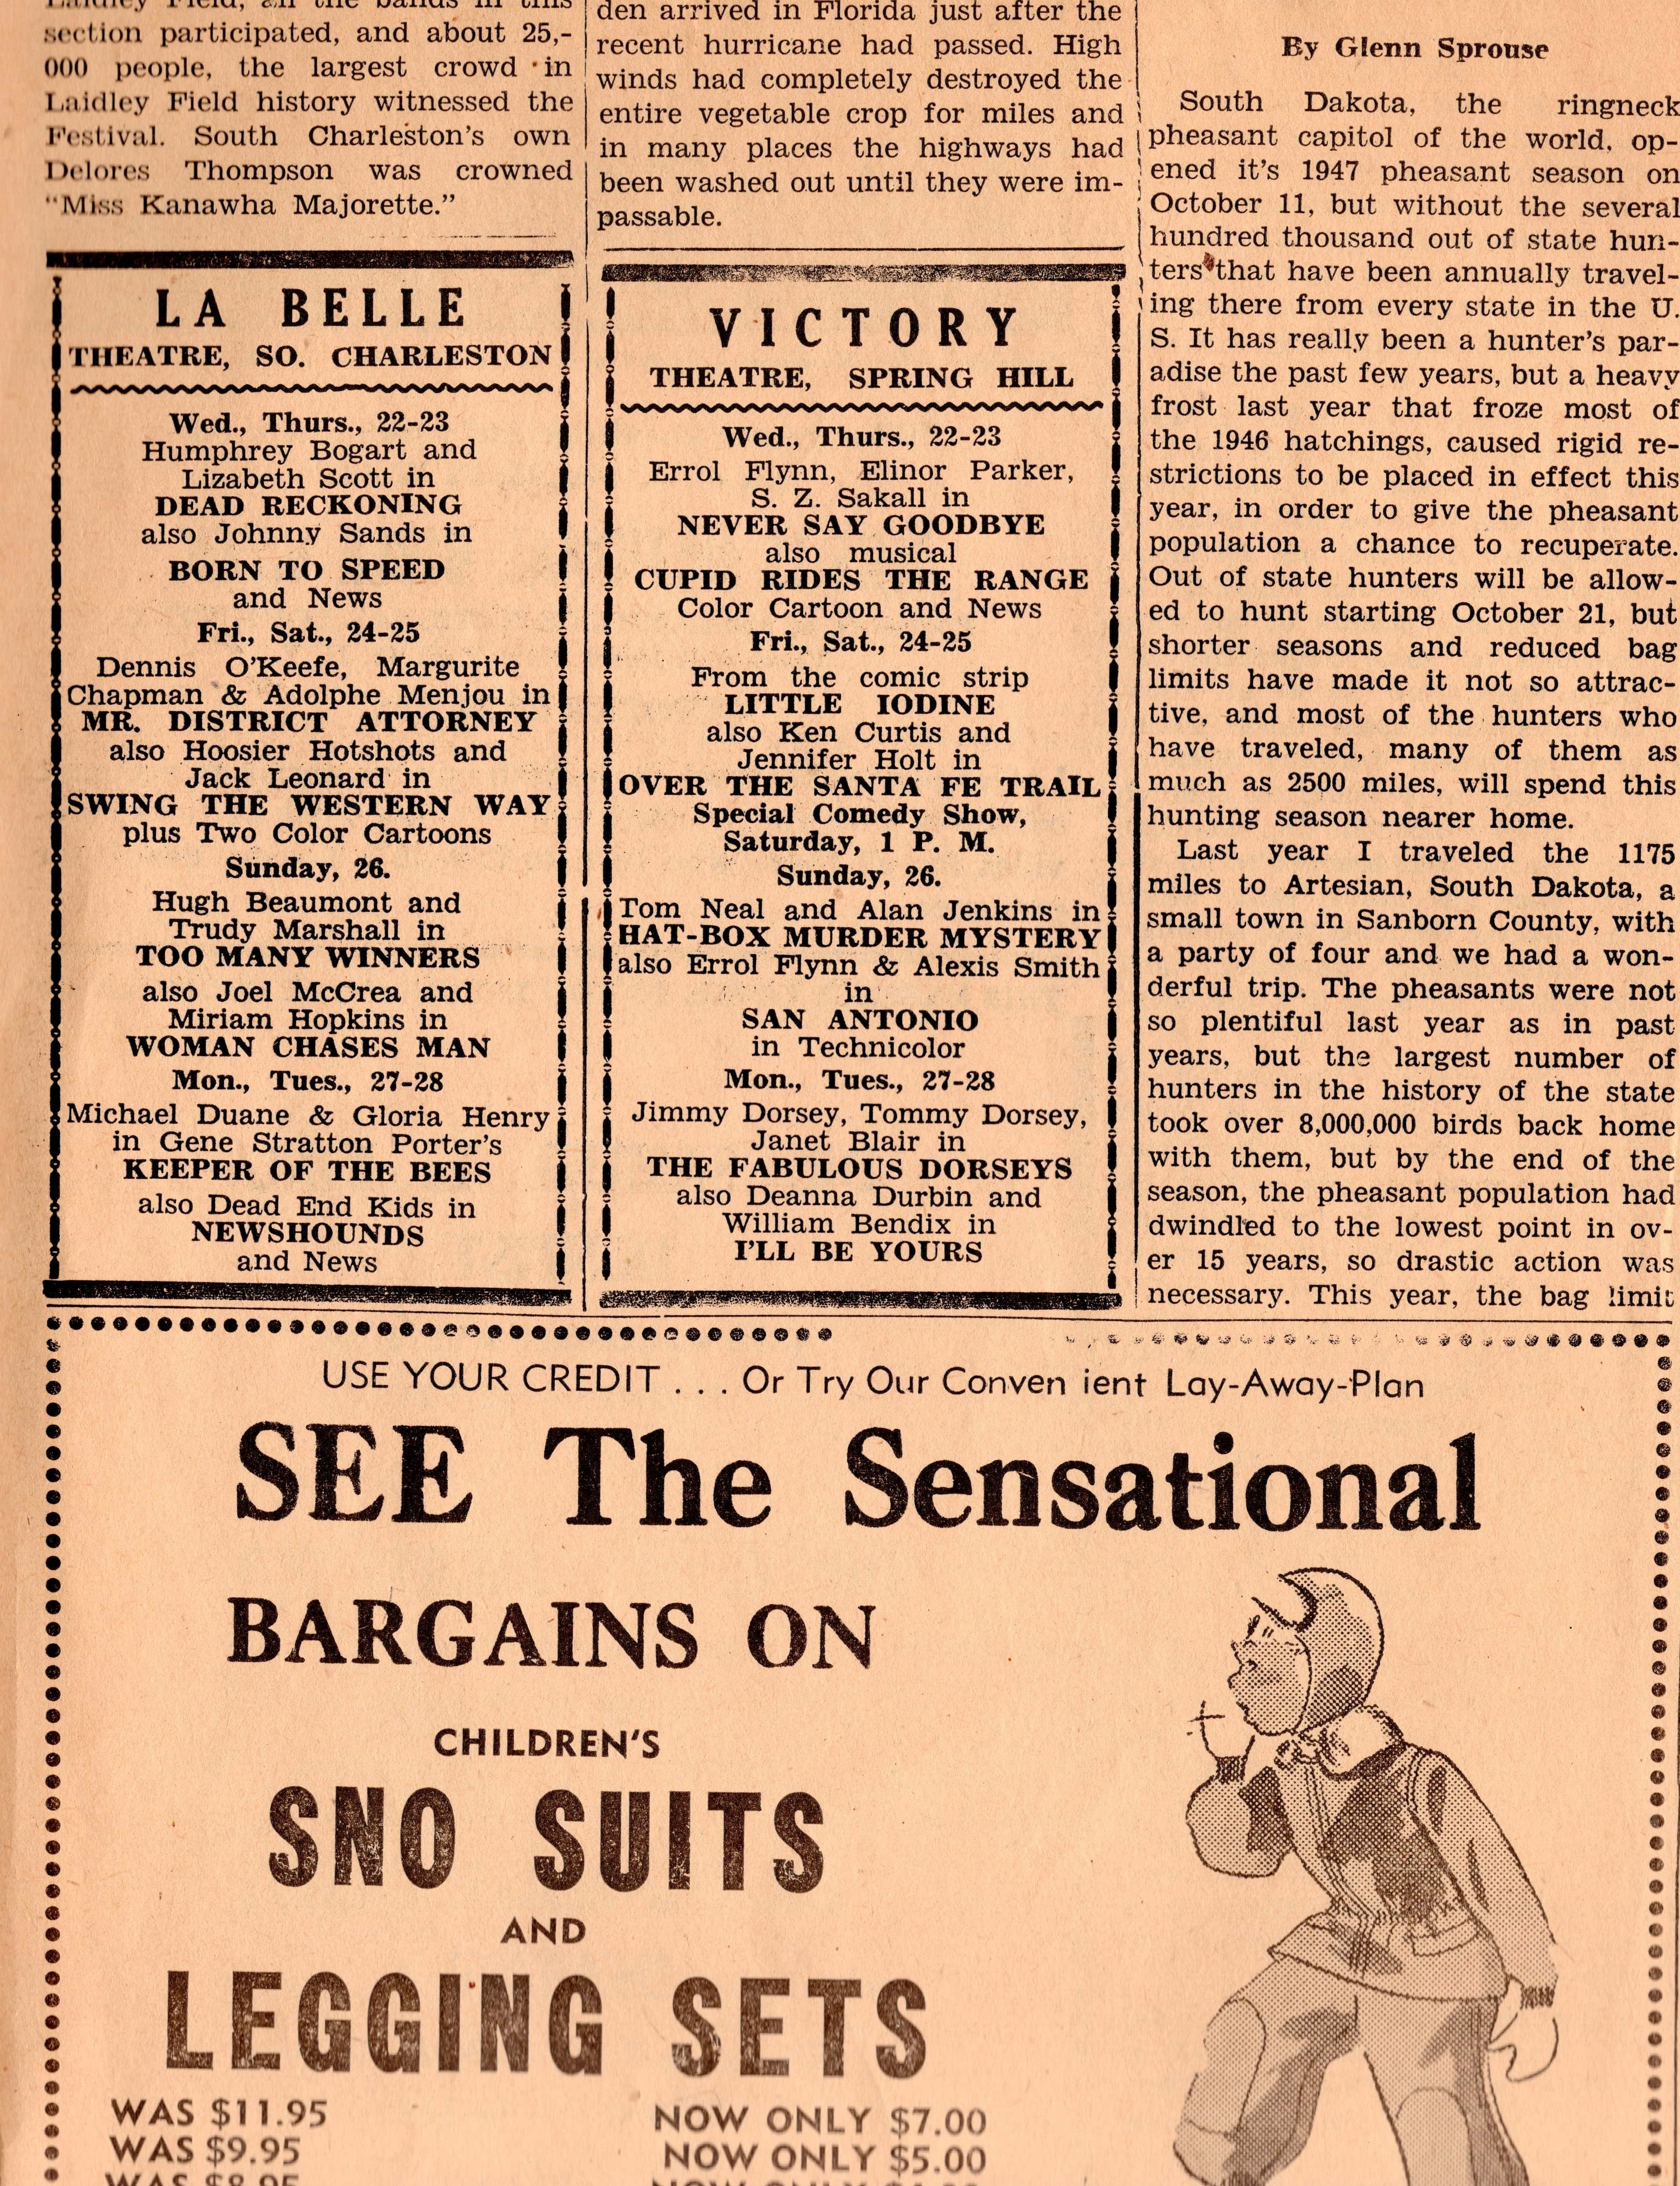 An excerpt from the South Charleston Free Press newspaper on Wednesday, Oct 22, 1947. Showtimes for Urling's two theaters, the LaBelle and Victory, are at upper left.